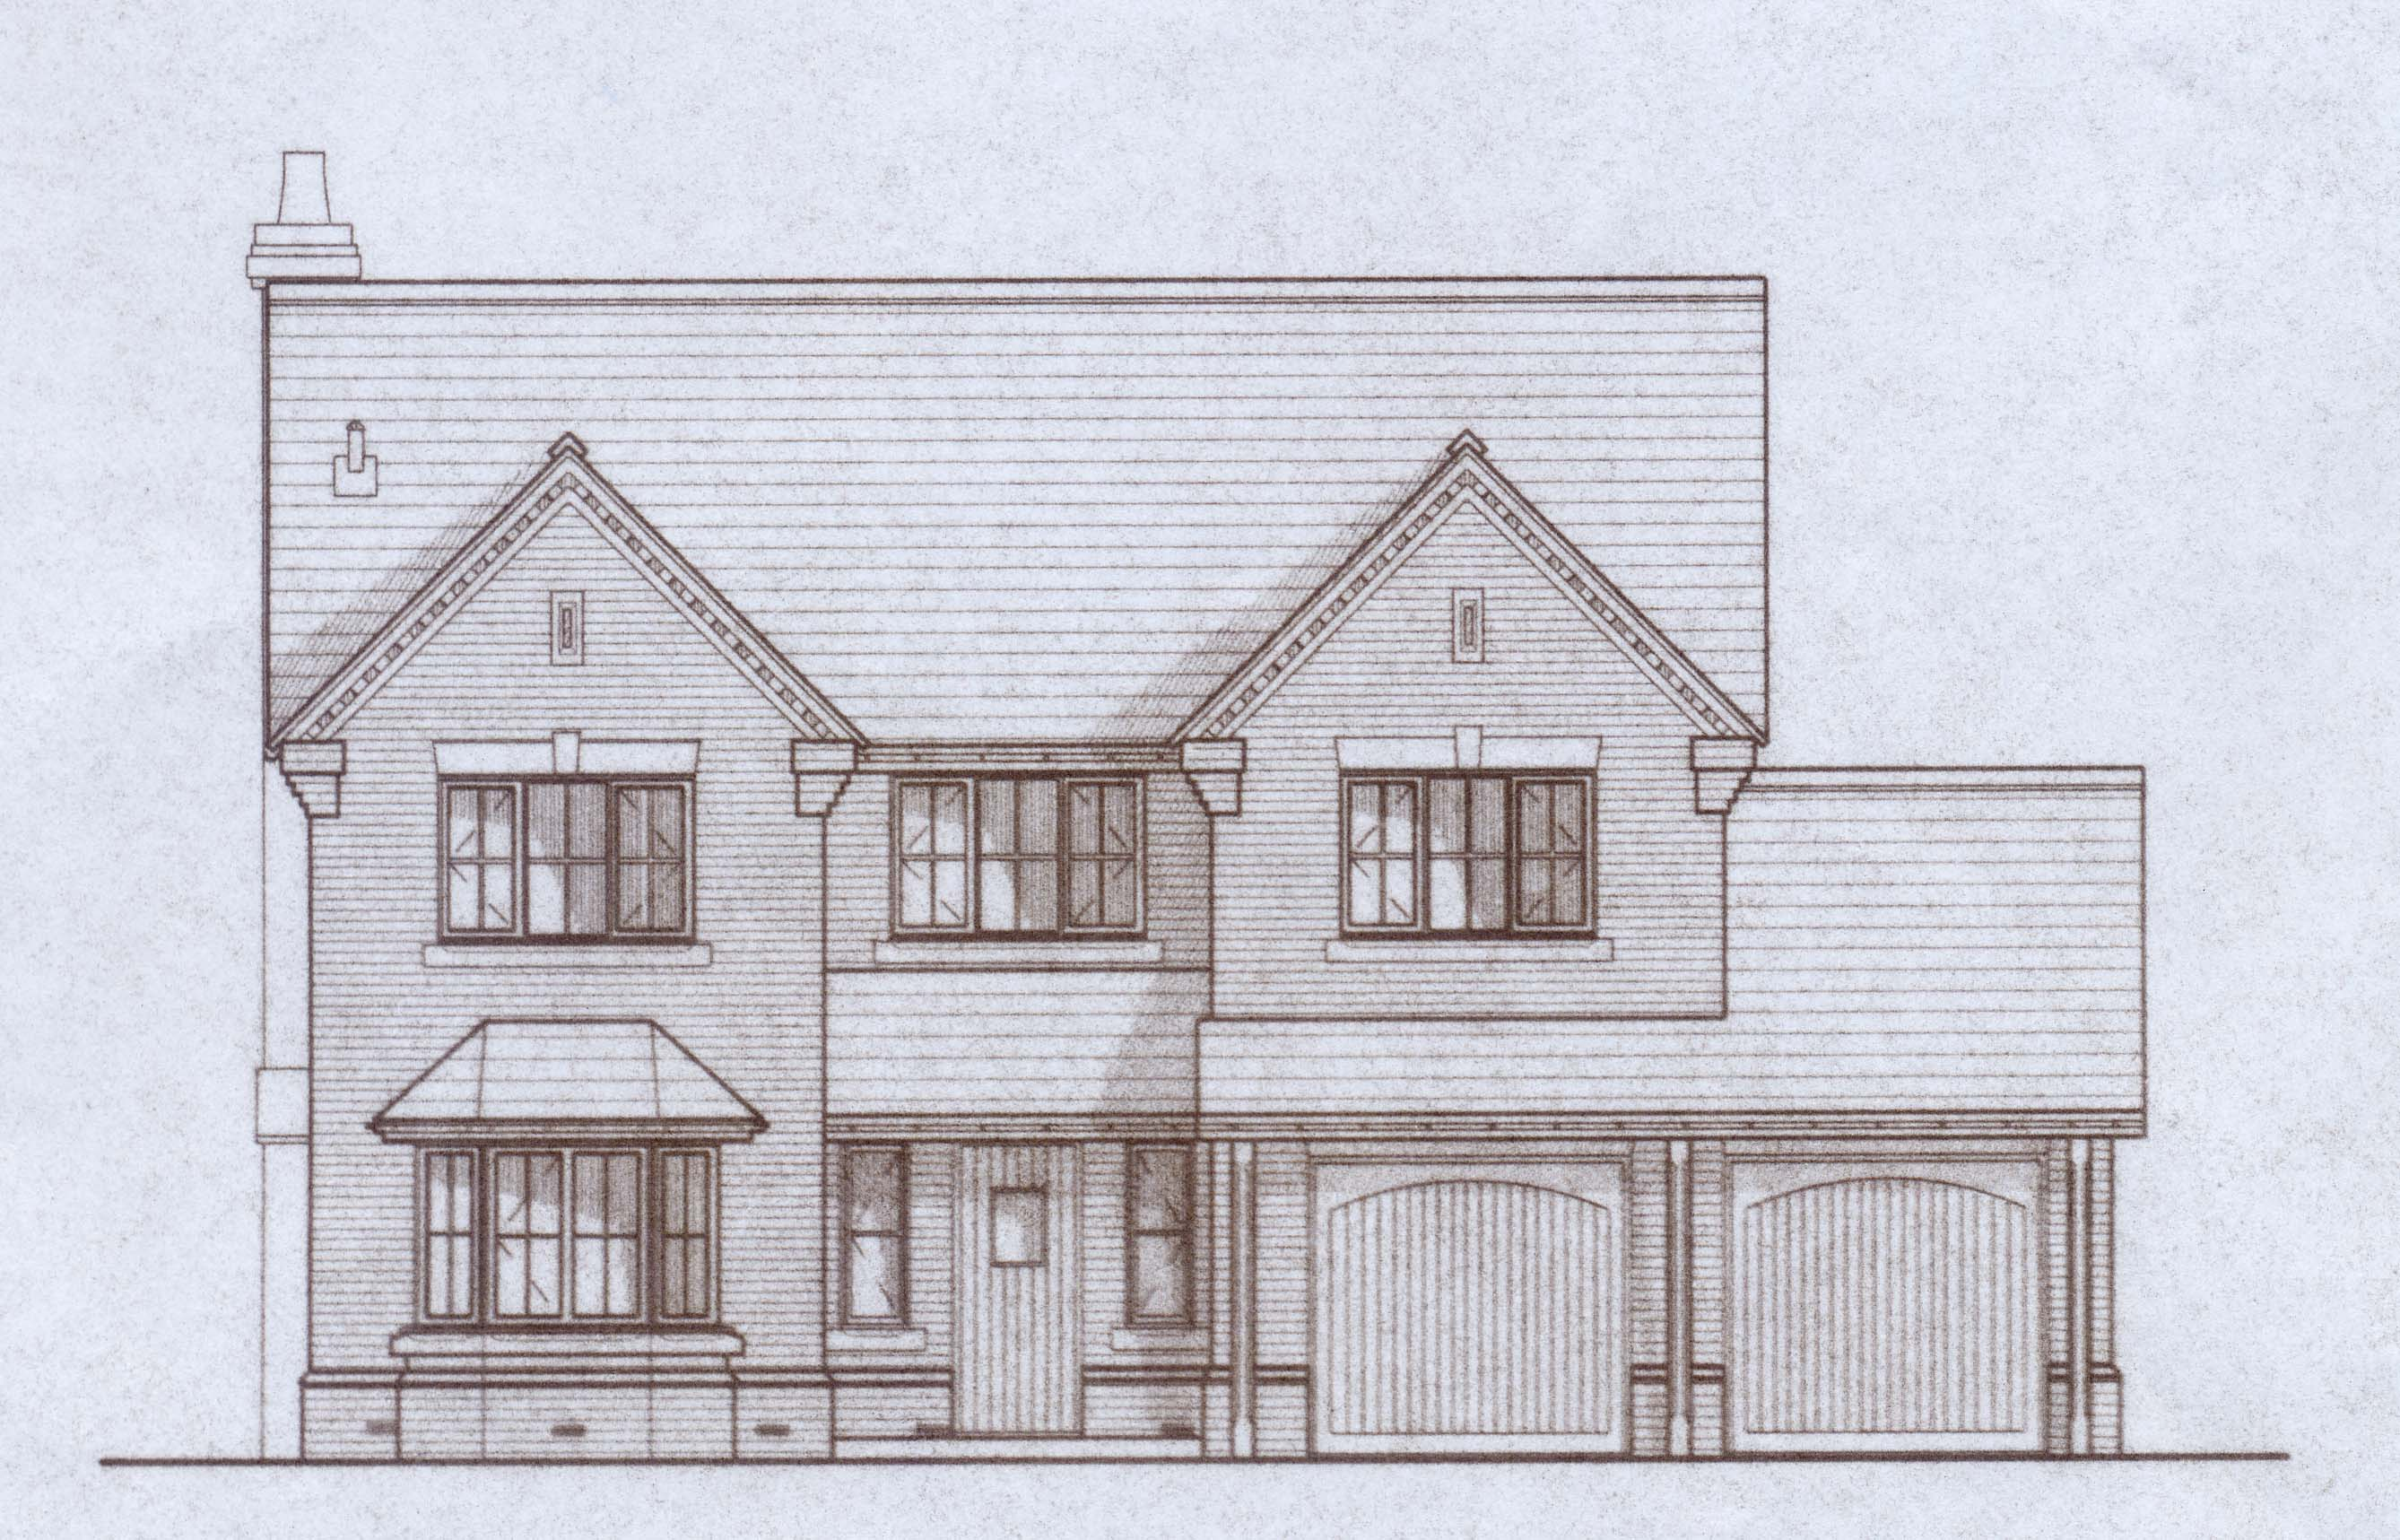 Plot 4, drawing front